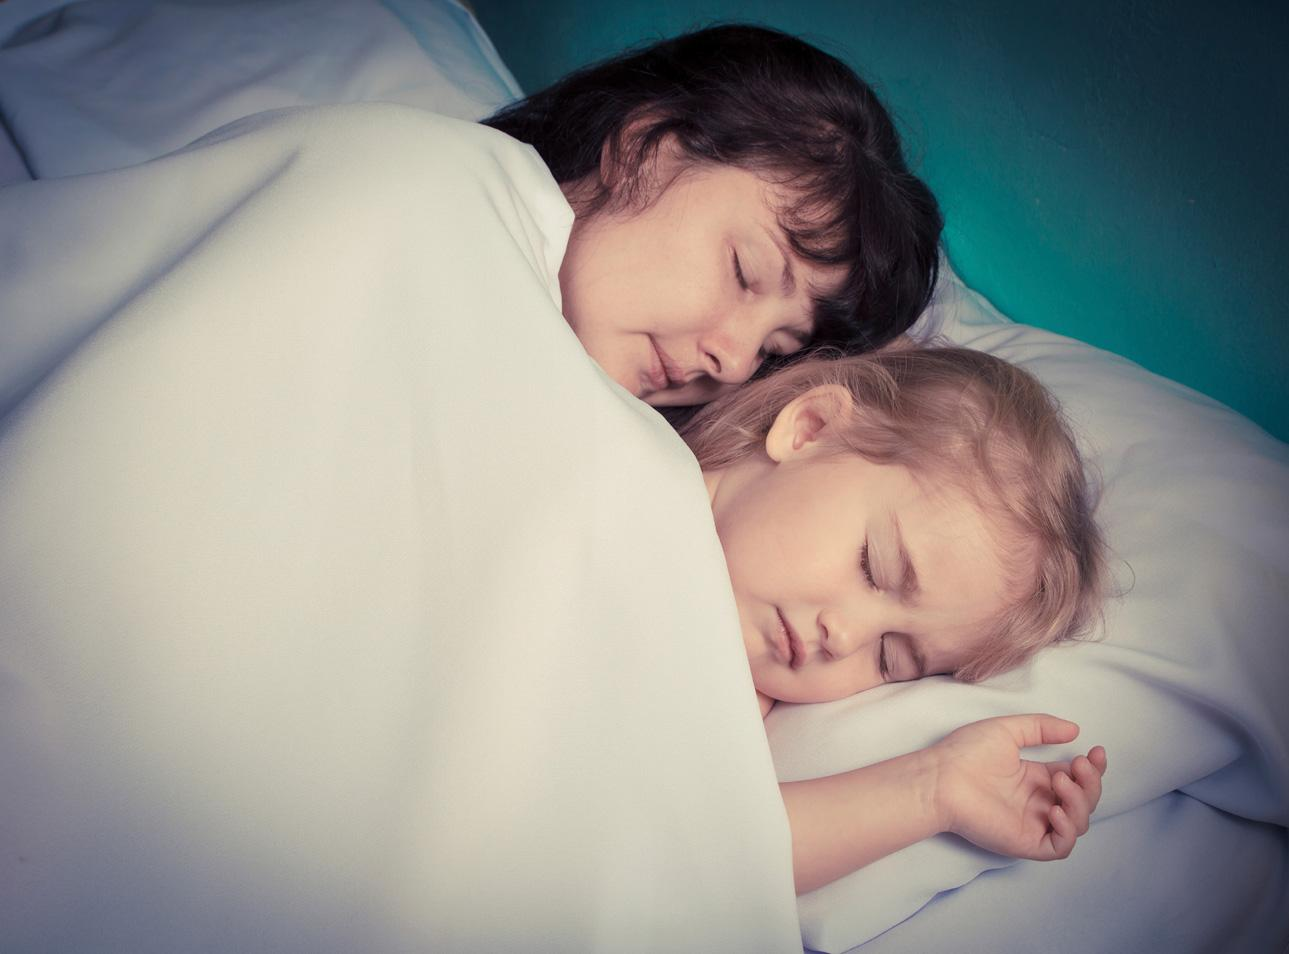 4 Things to Do When Your Child Has Nightmares